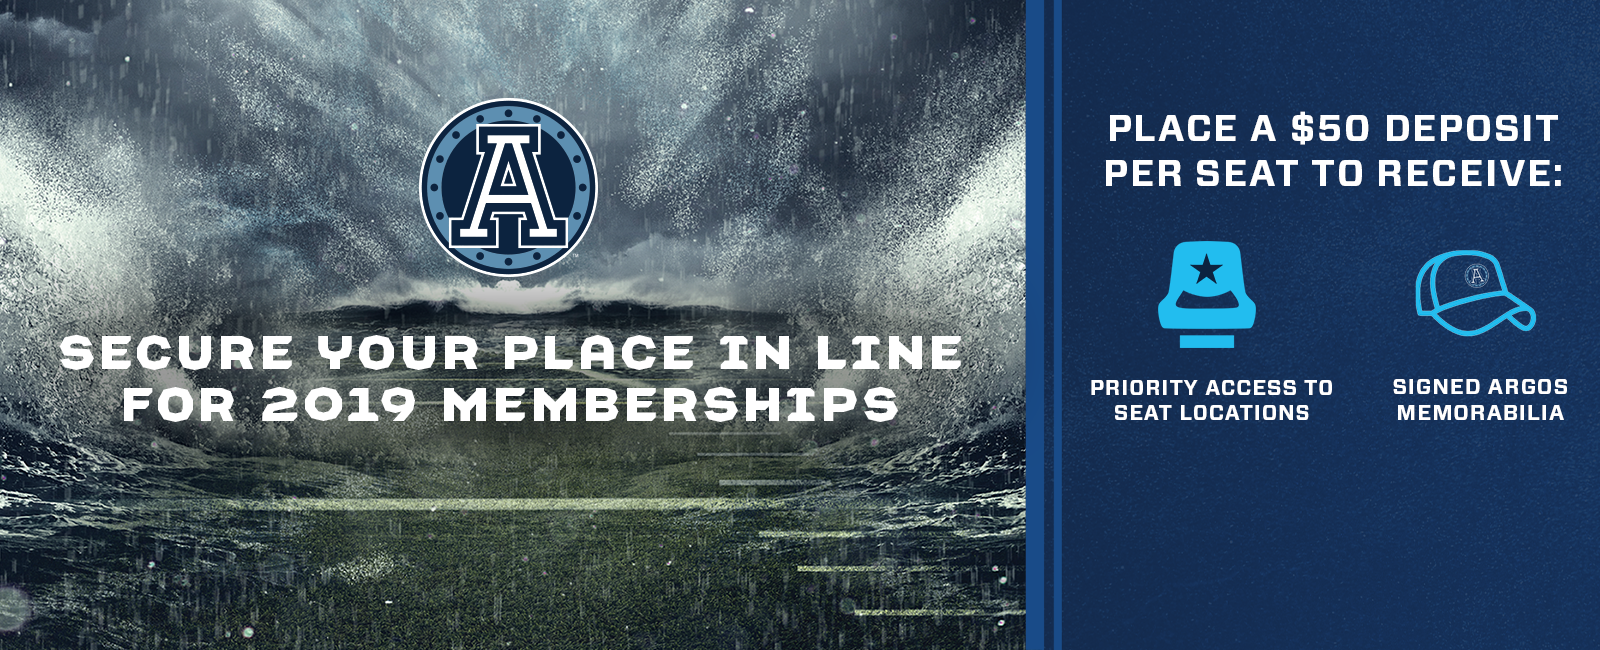 Argos 2019 Membership Deposits